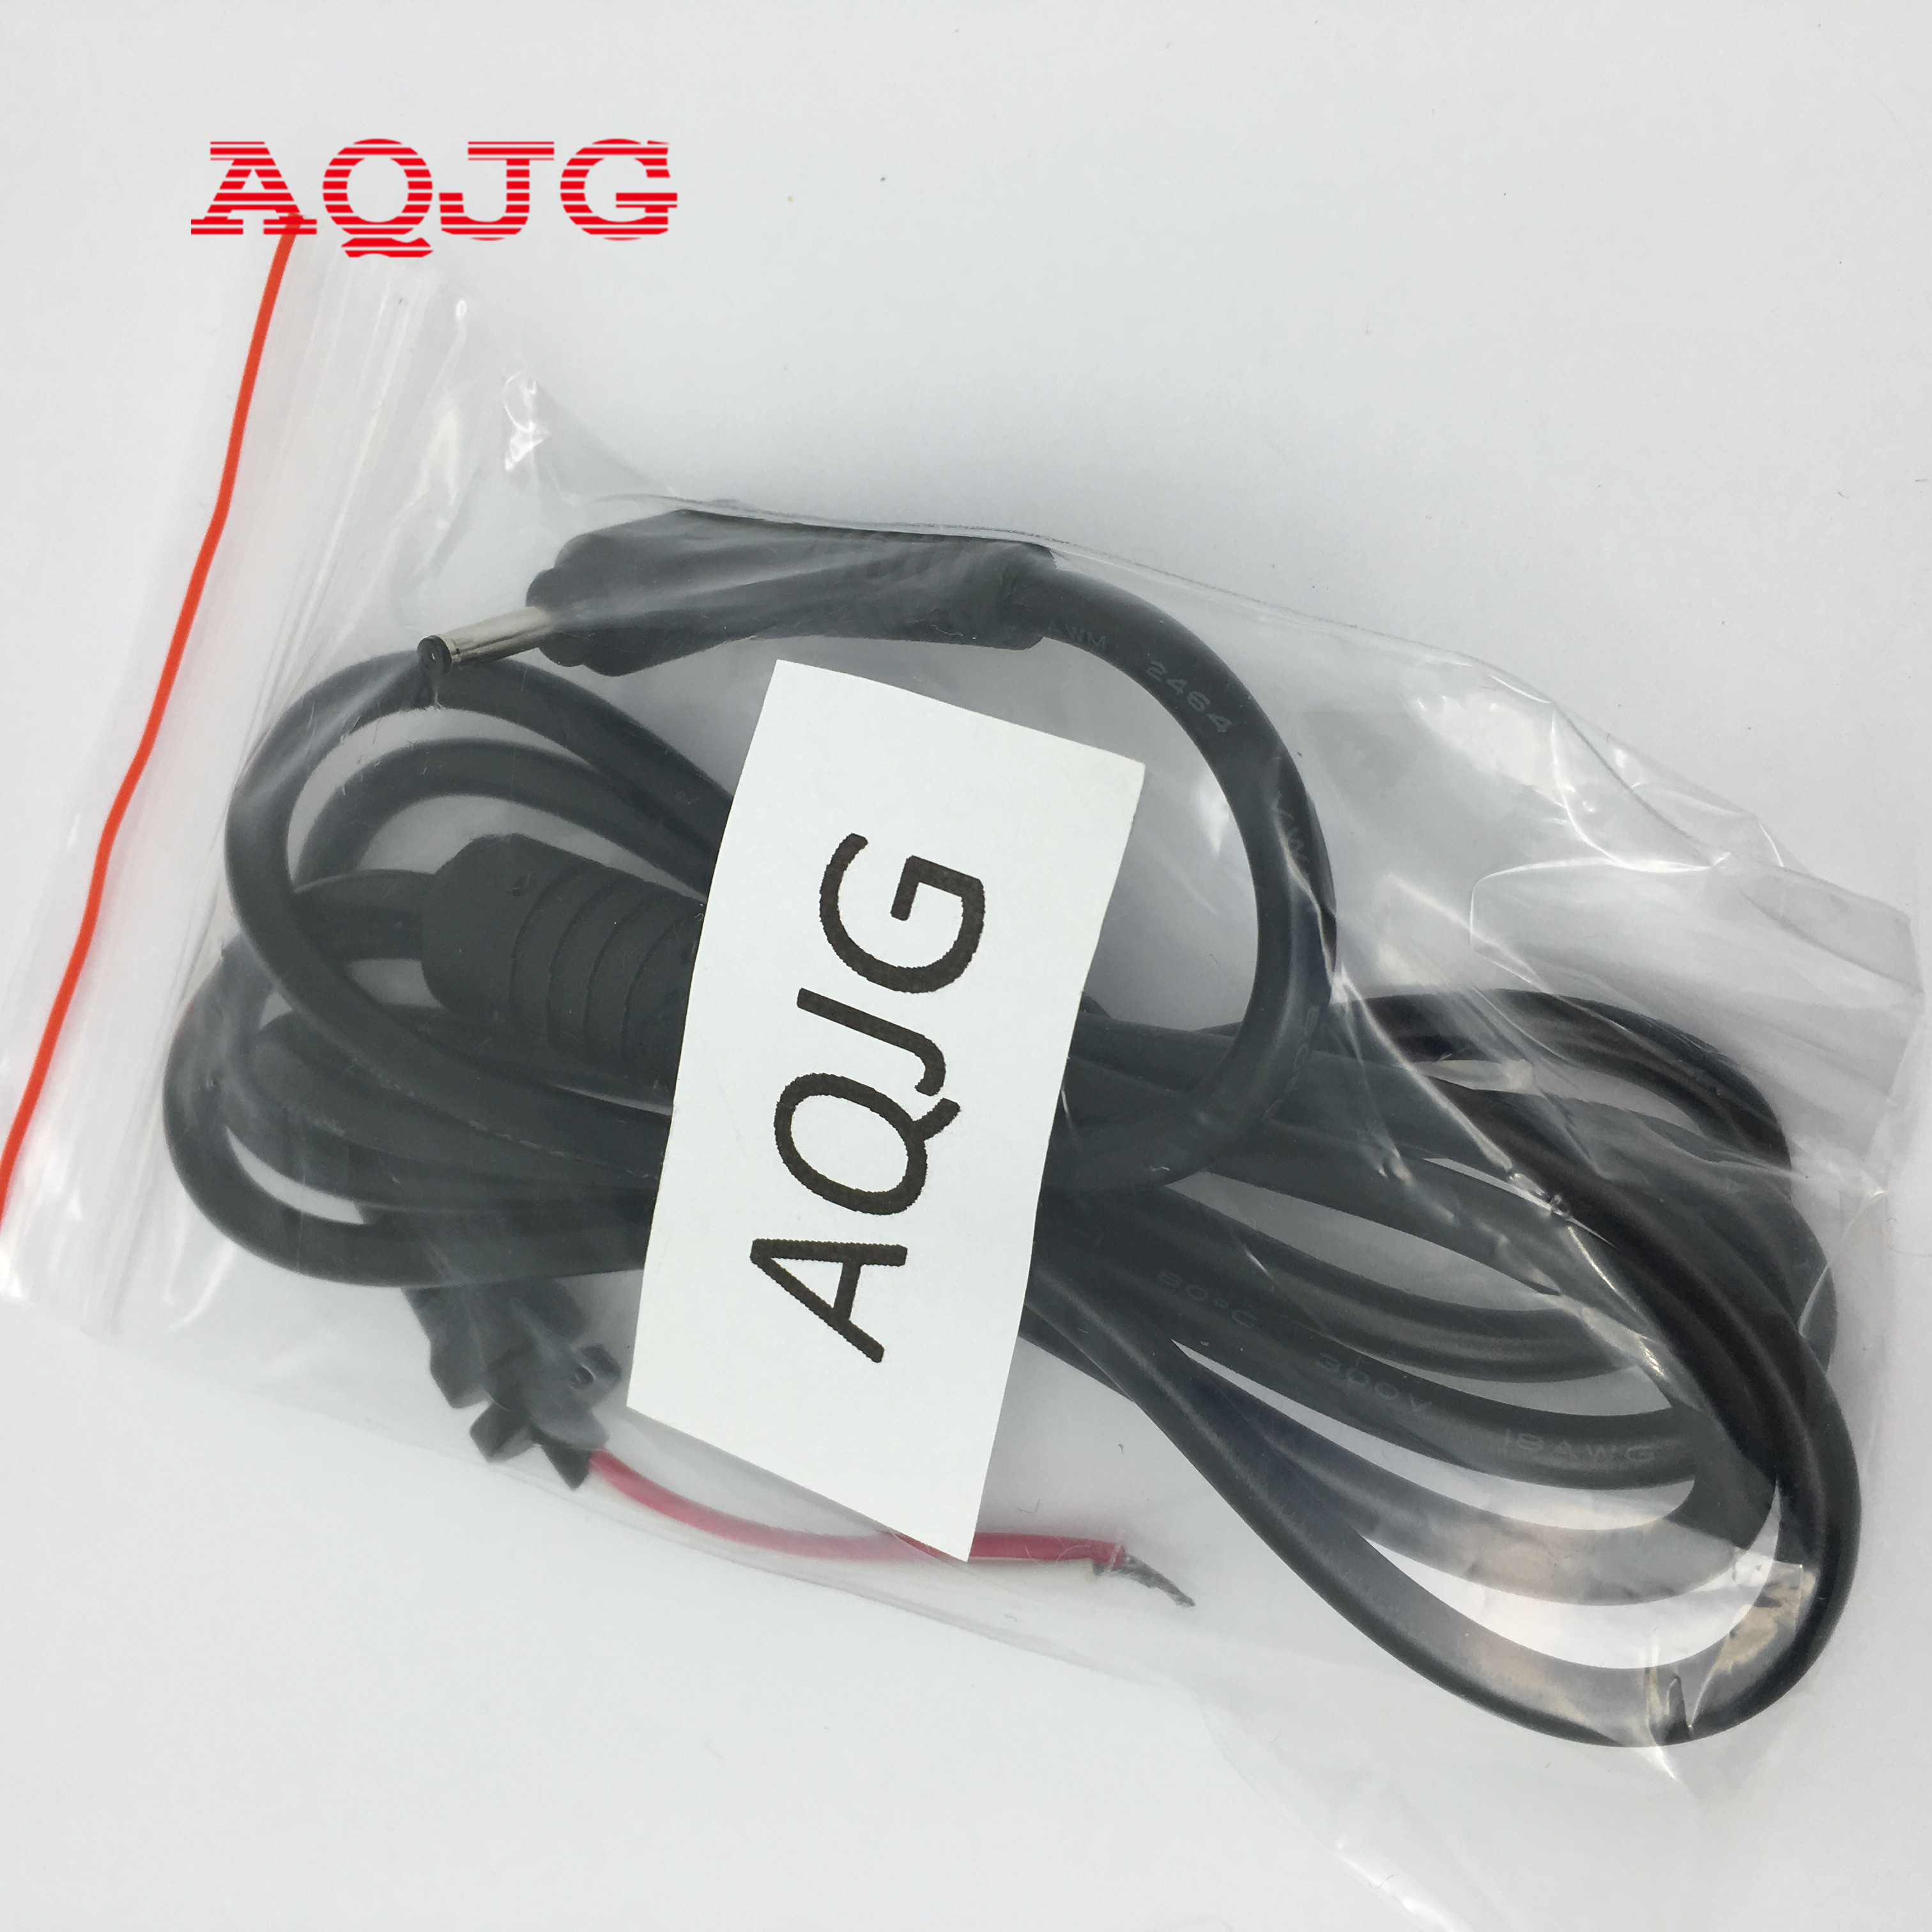 small resolution of 3 0x1 1 mm dc power charger plug cable connector for asus samsung laptop adapter charger dc connector 3 0 1 0 cable aqjg in computer cables connectors